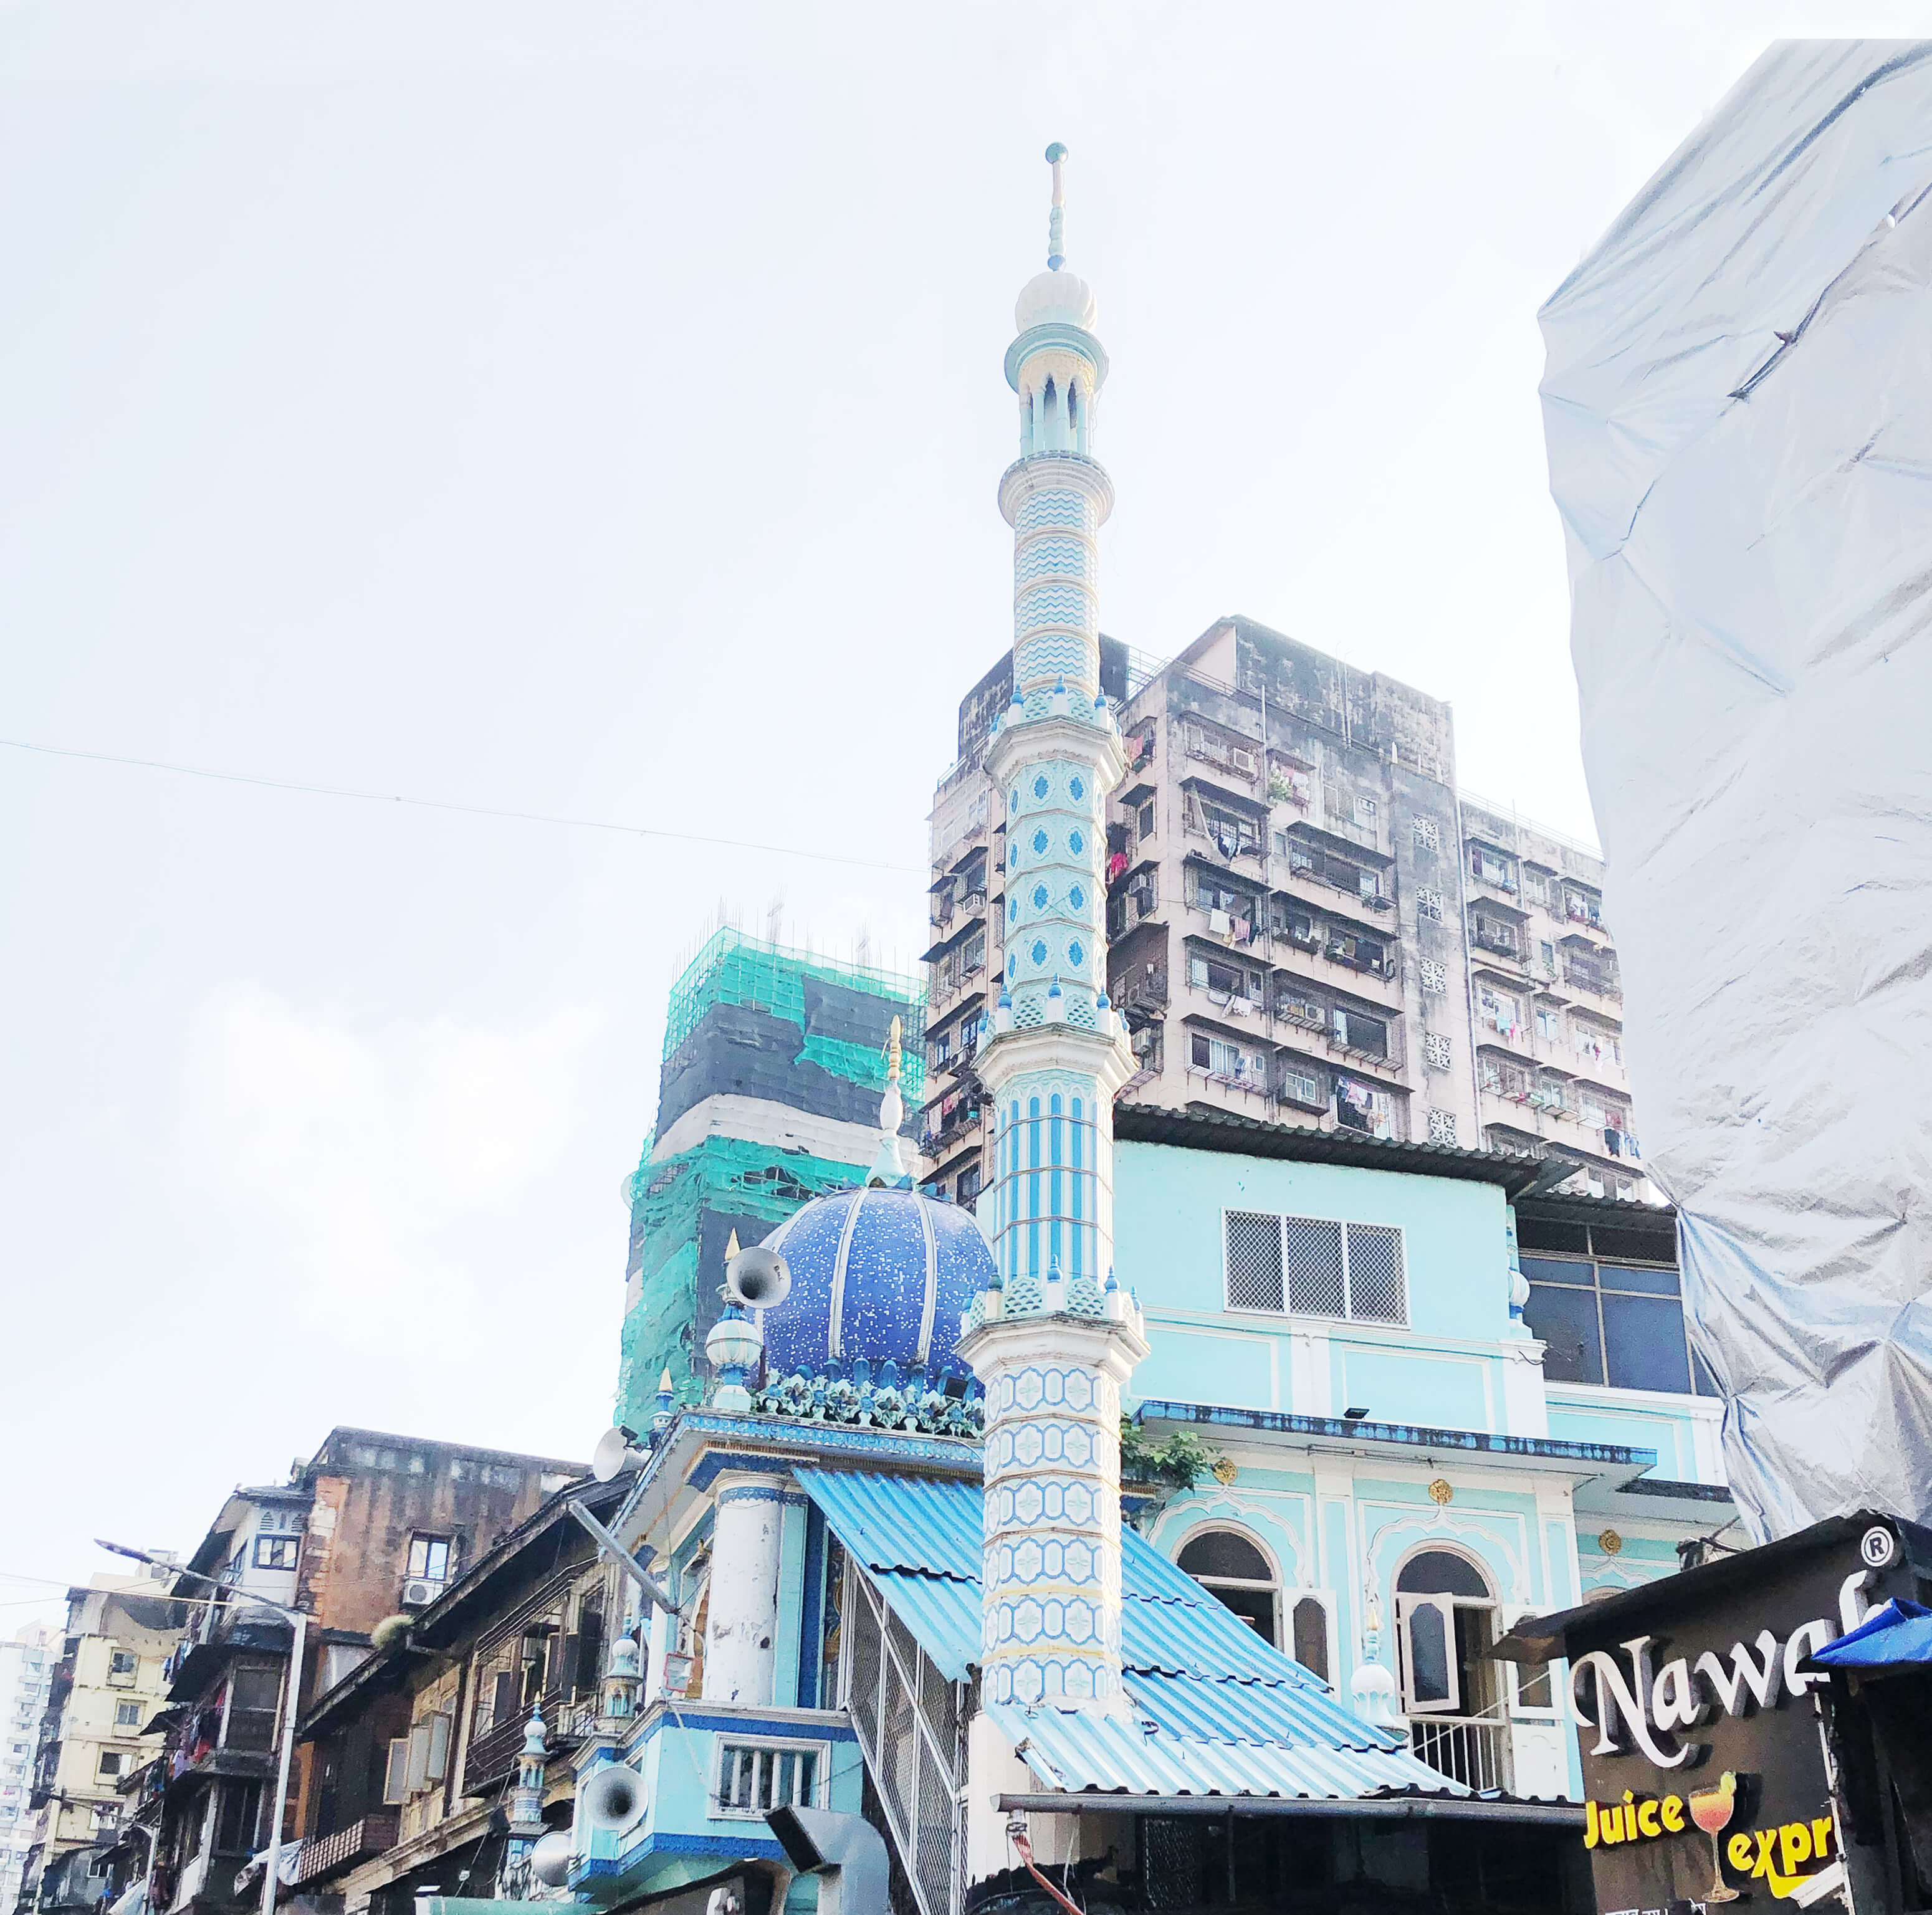 A blue mosque in Mohammed Ali Road market in South Mumbai surrounded by residential high rise buildings